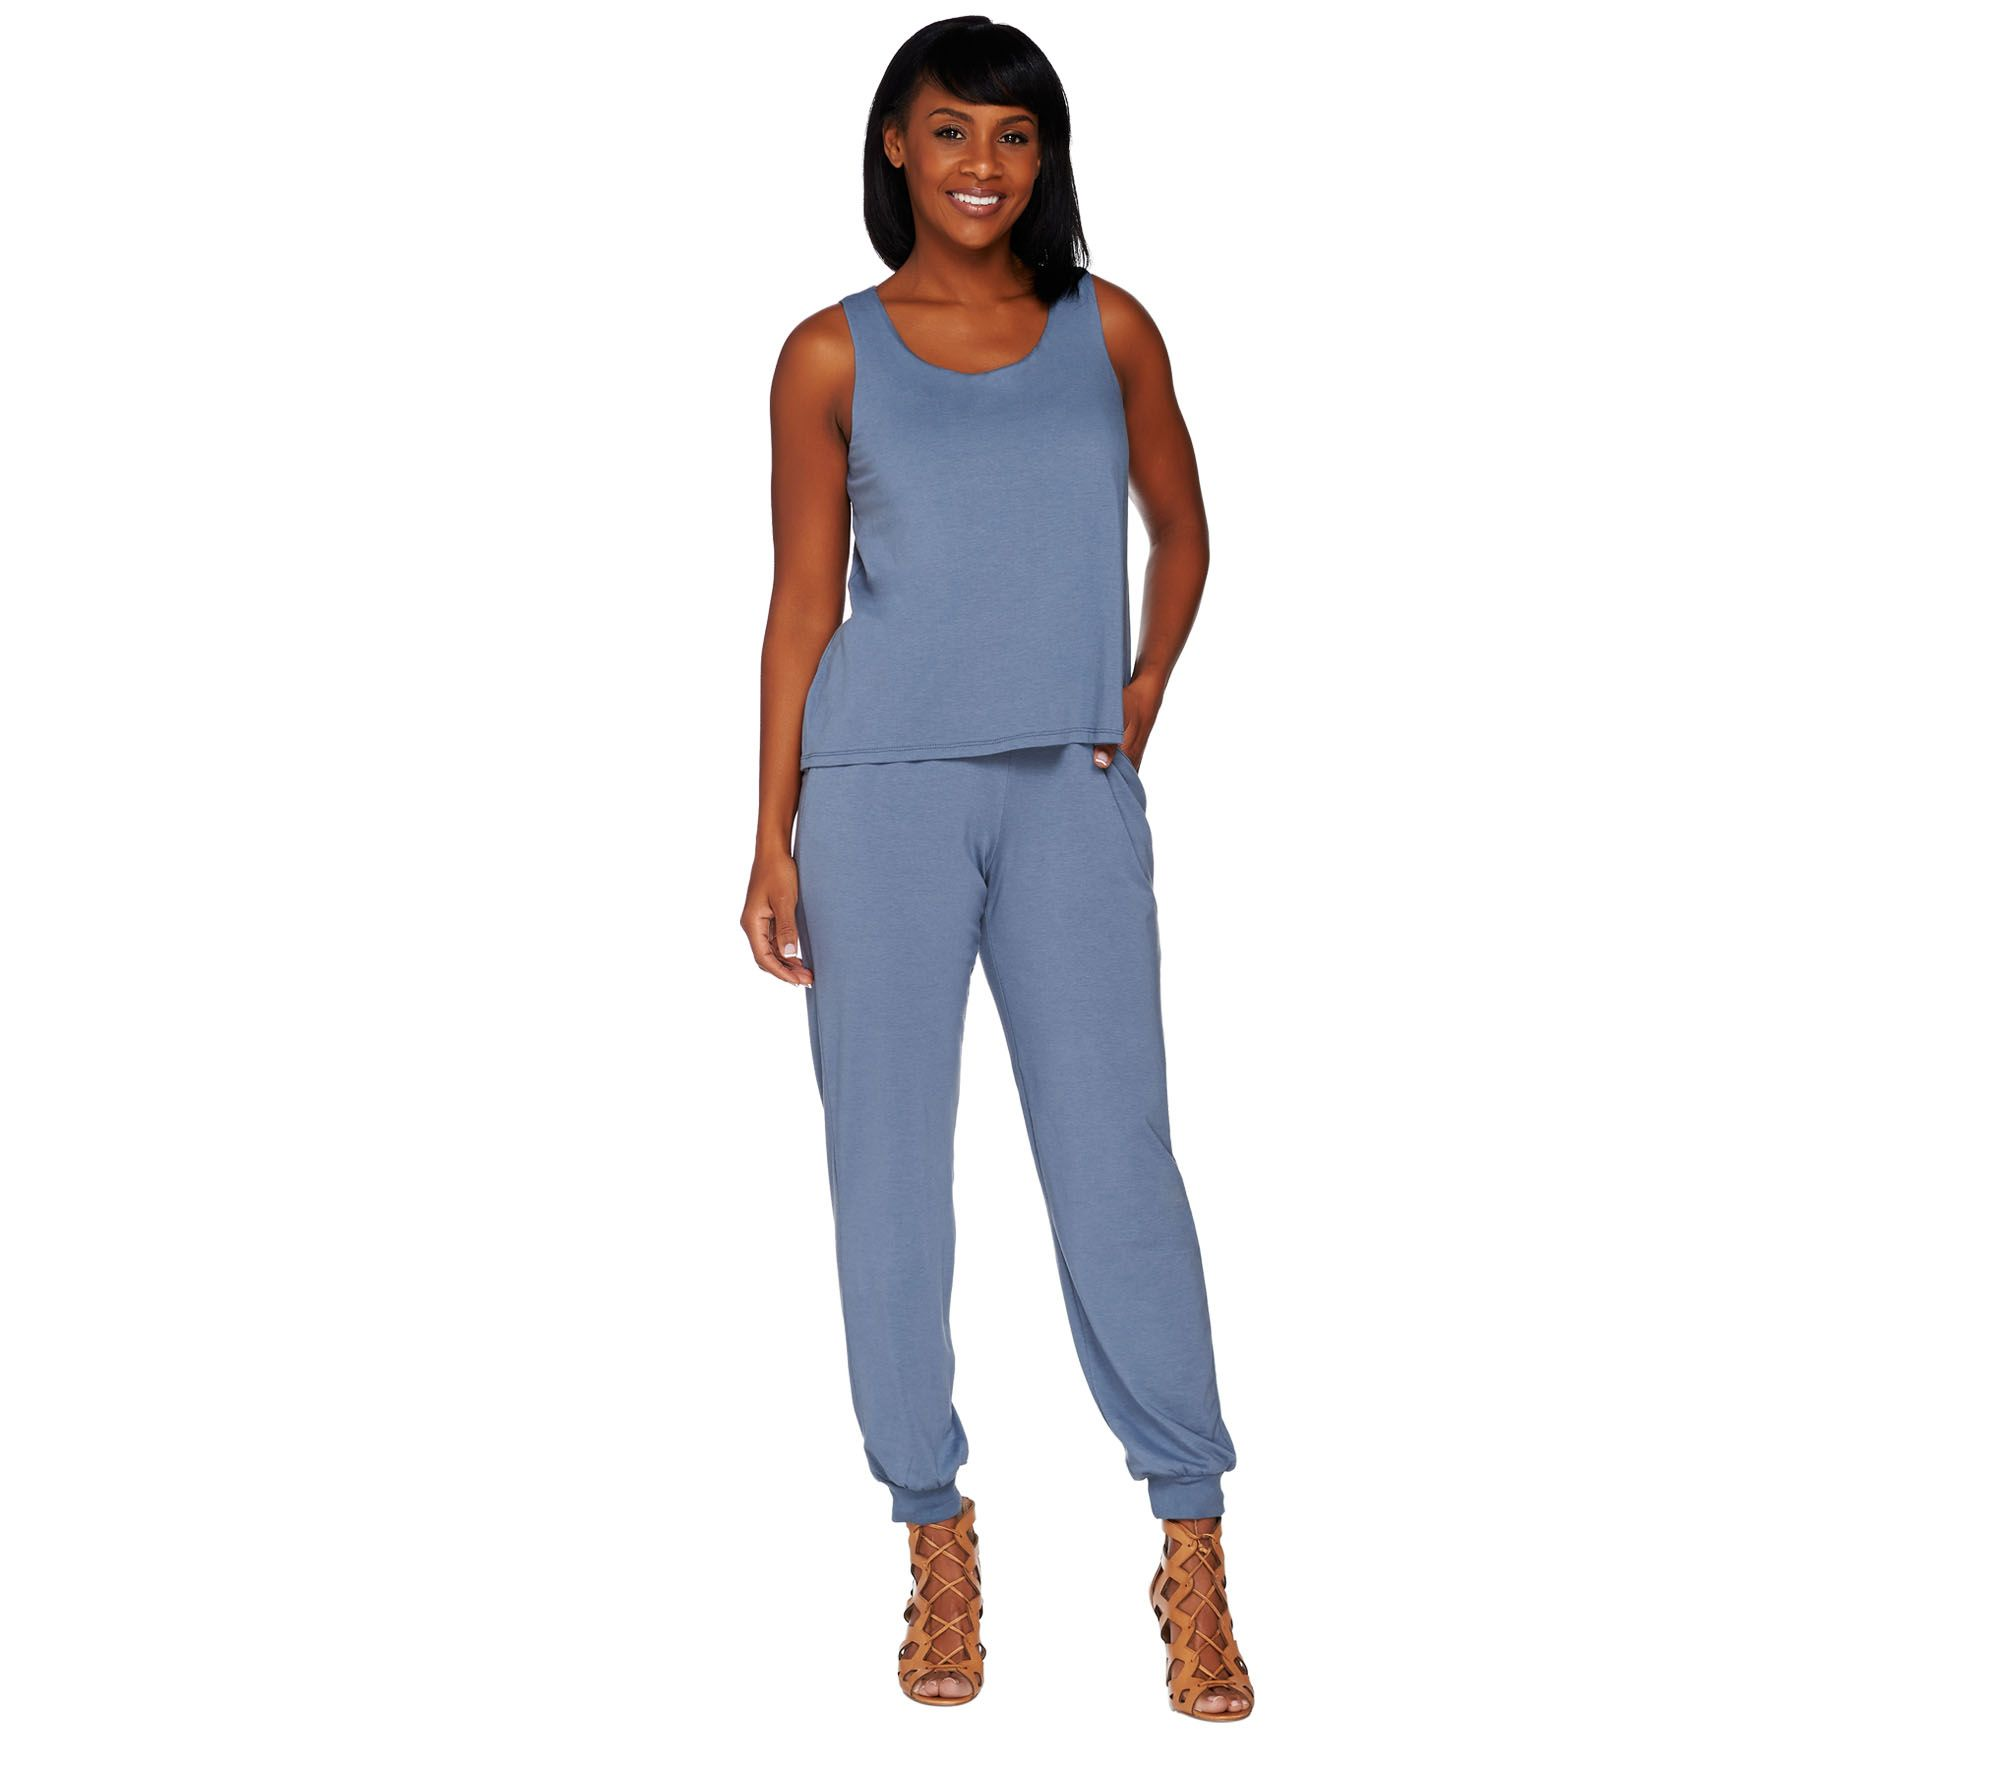 3b60563589c6 Lisa Rinna Collection Regular Banded Bottom Knit Jumpsuit - Page 1 — QVC.com